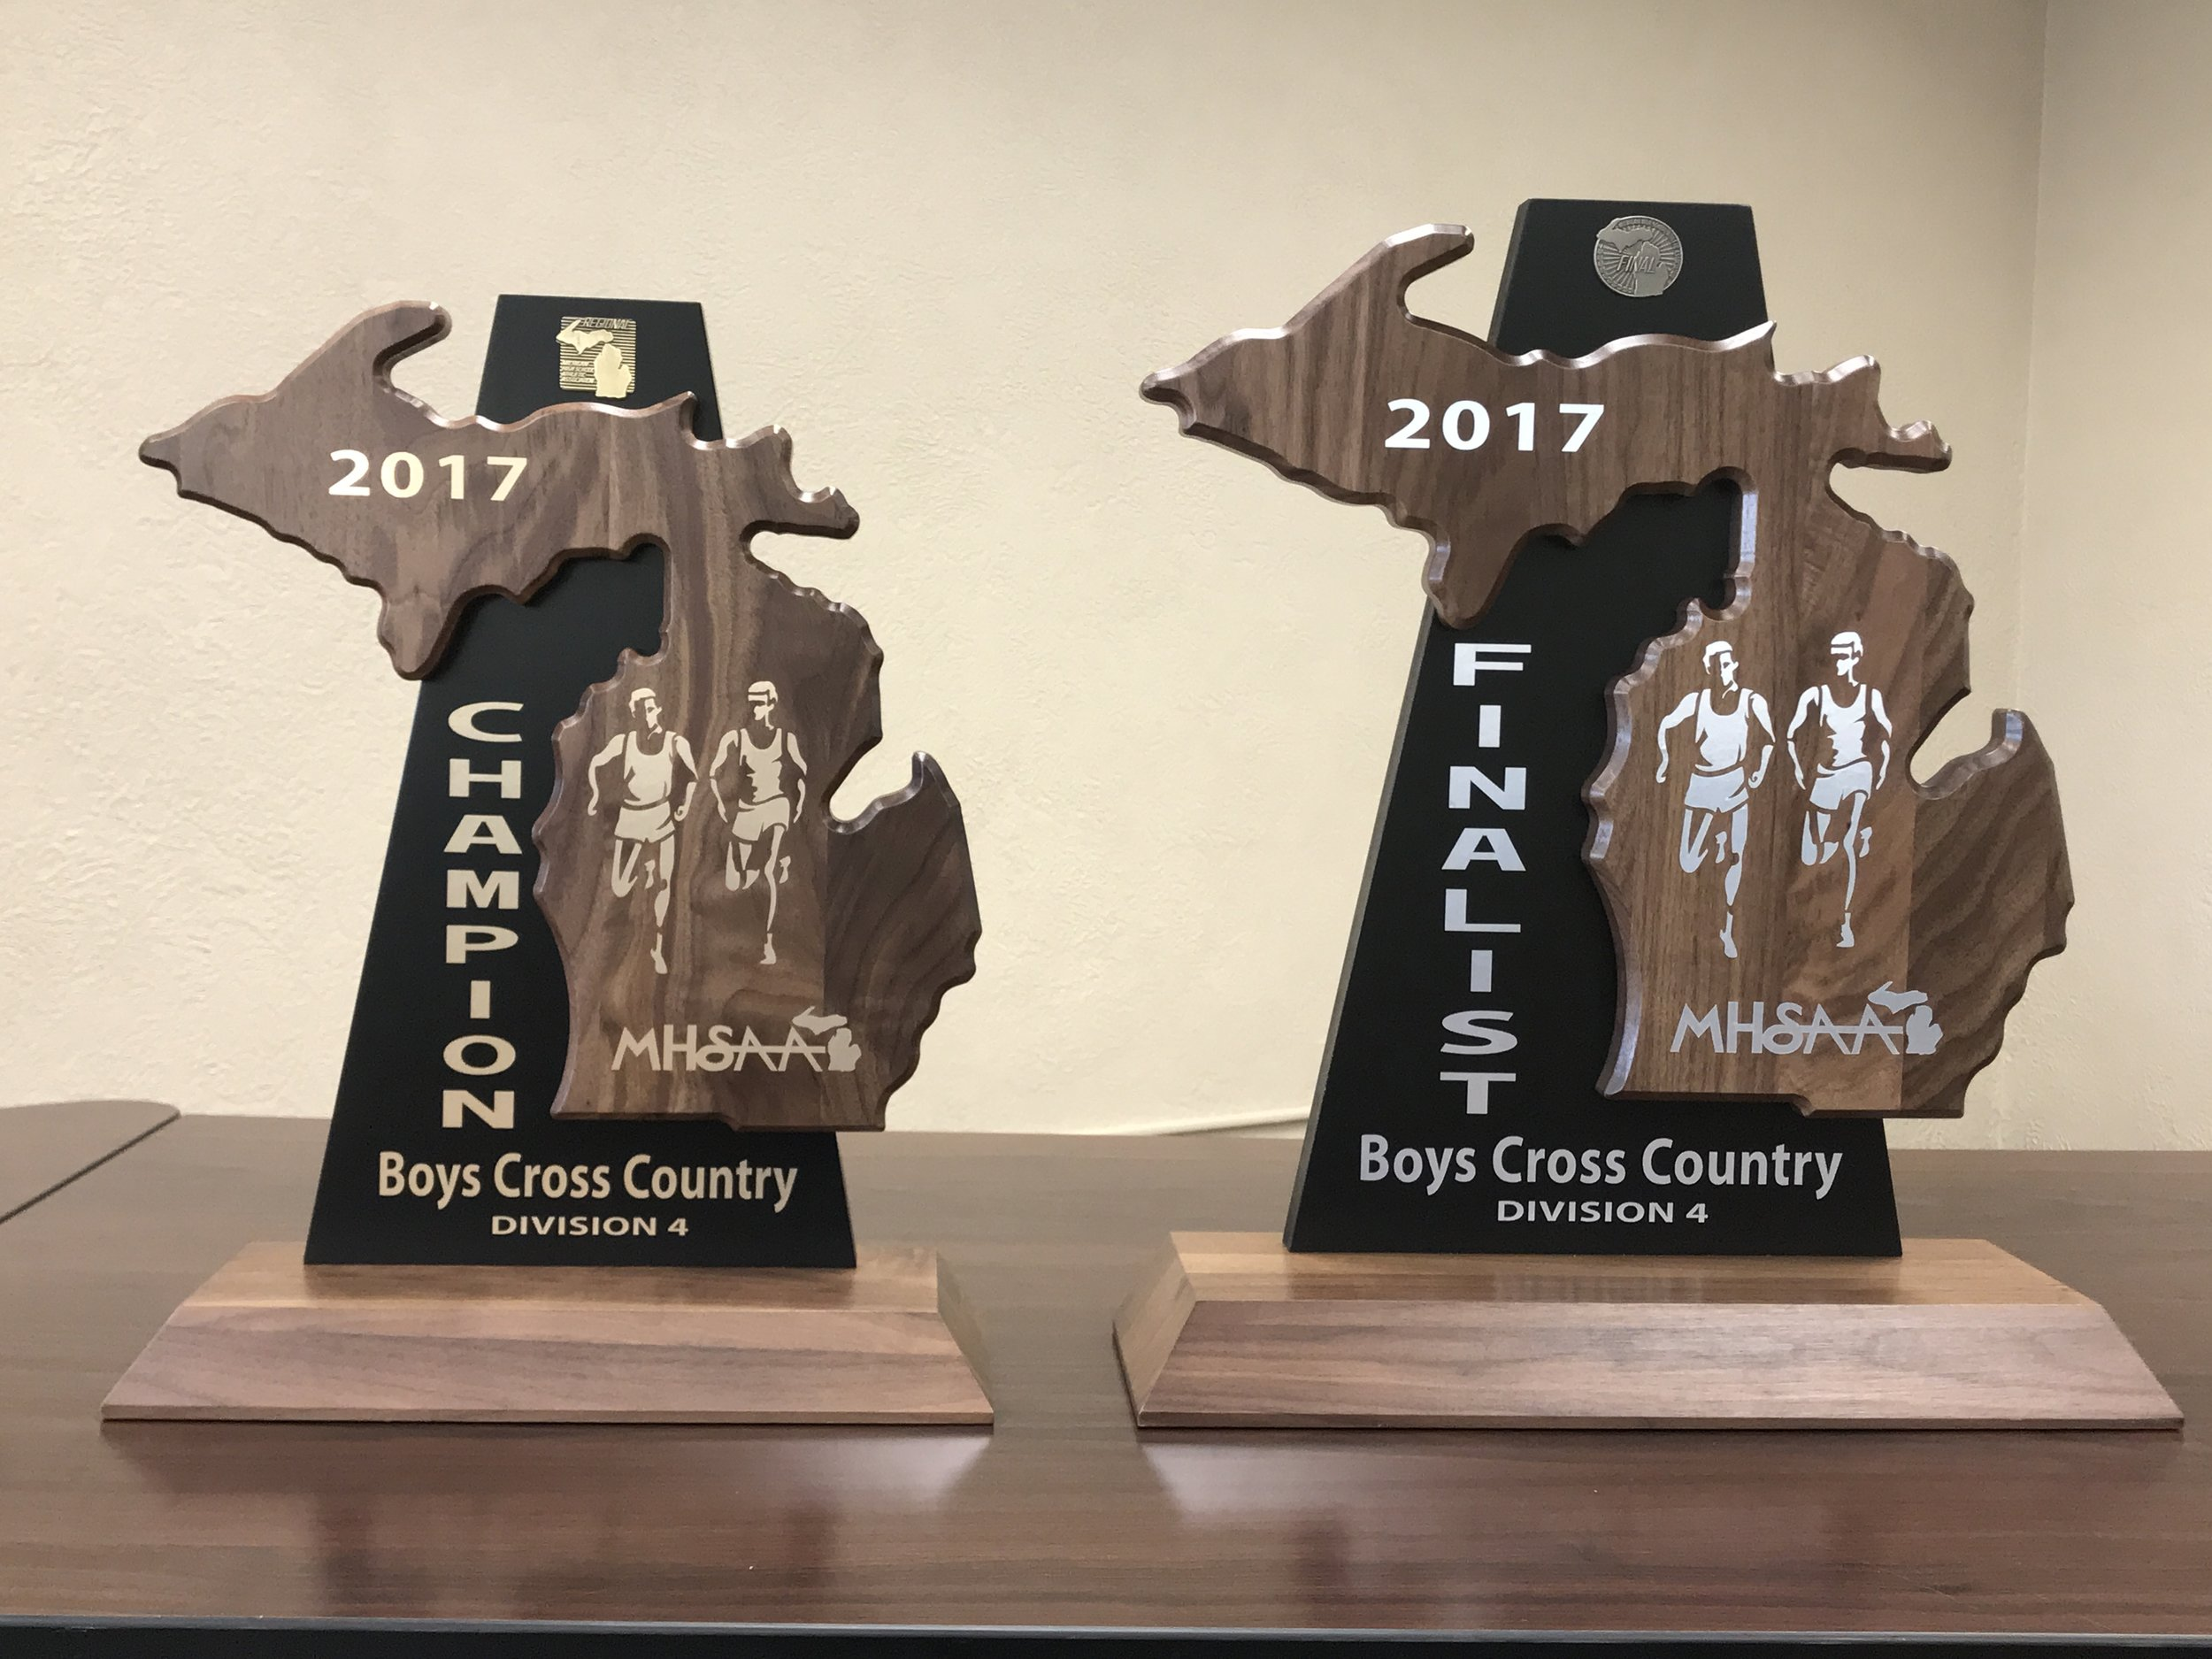 Potterville Boys Cross Country Championship Trophies